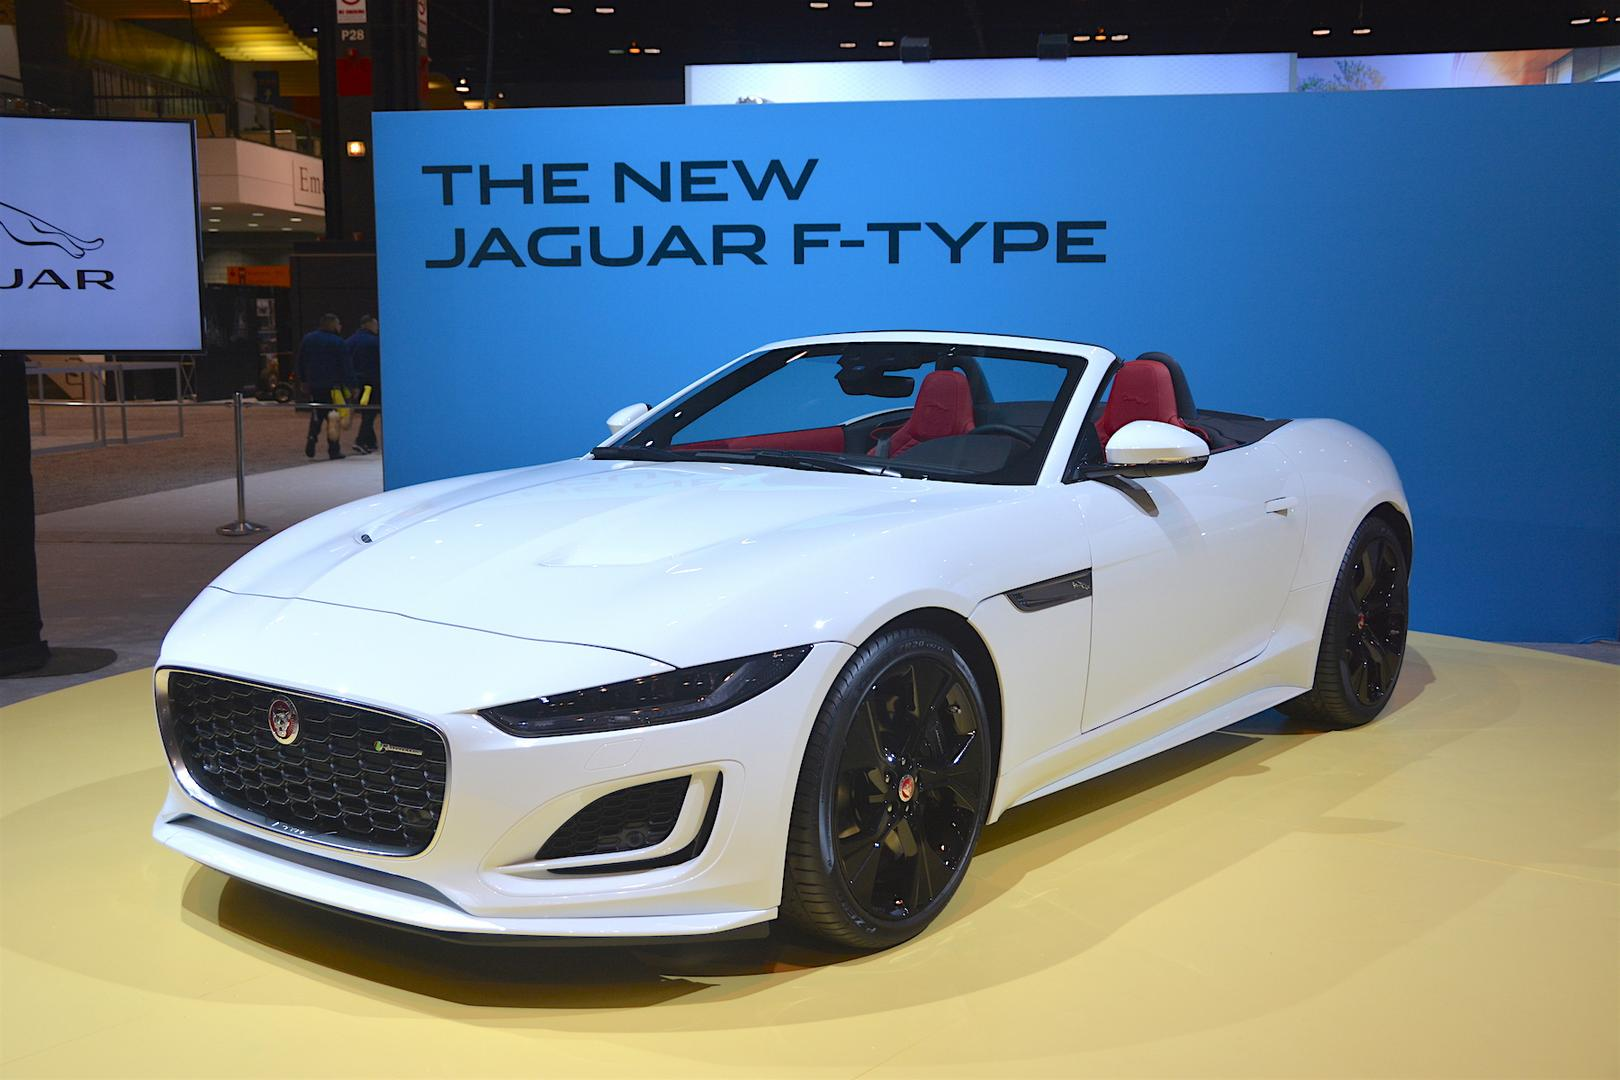 2020 jaguar f-type convertible live from chicago auto show